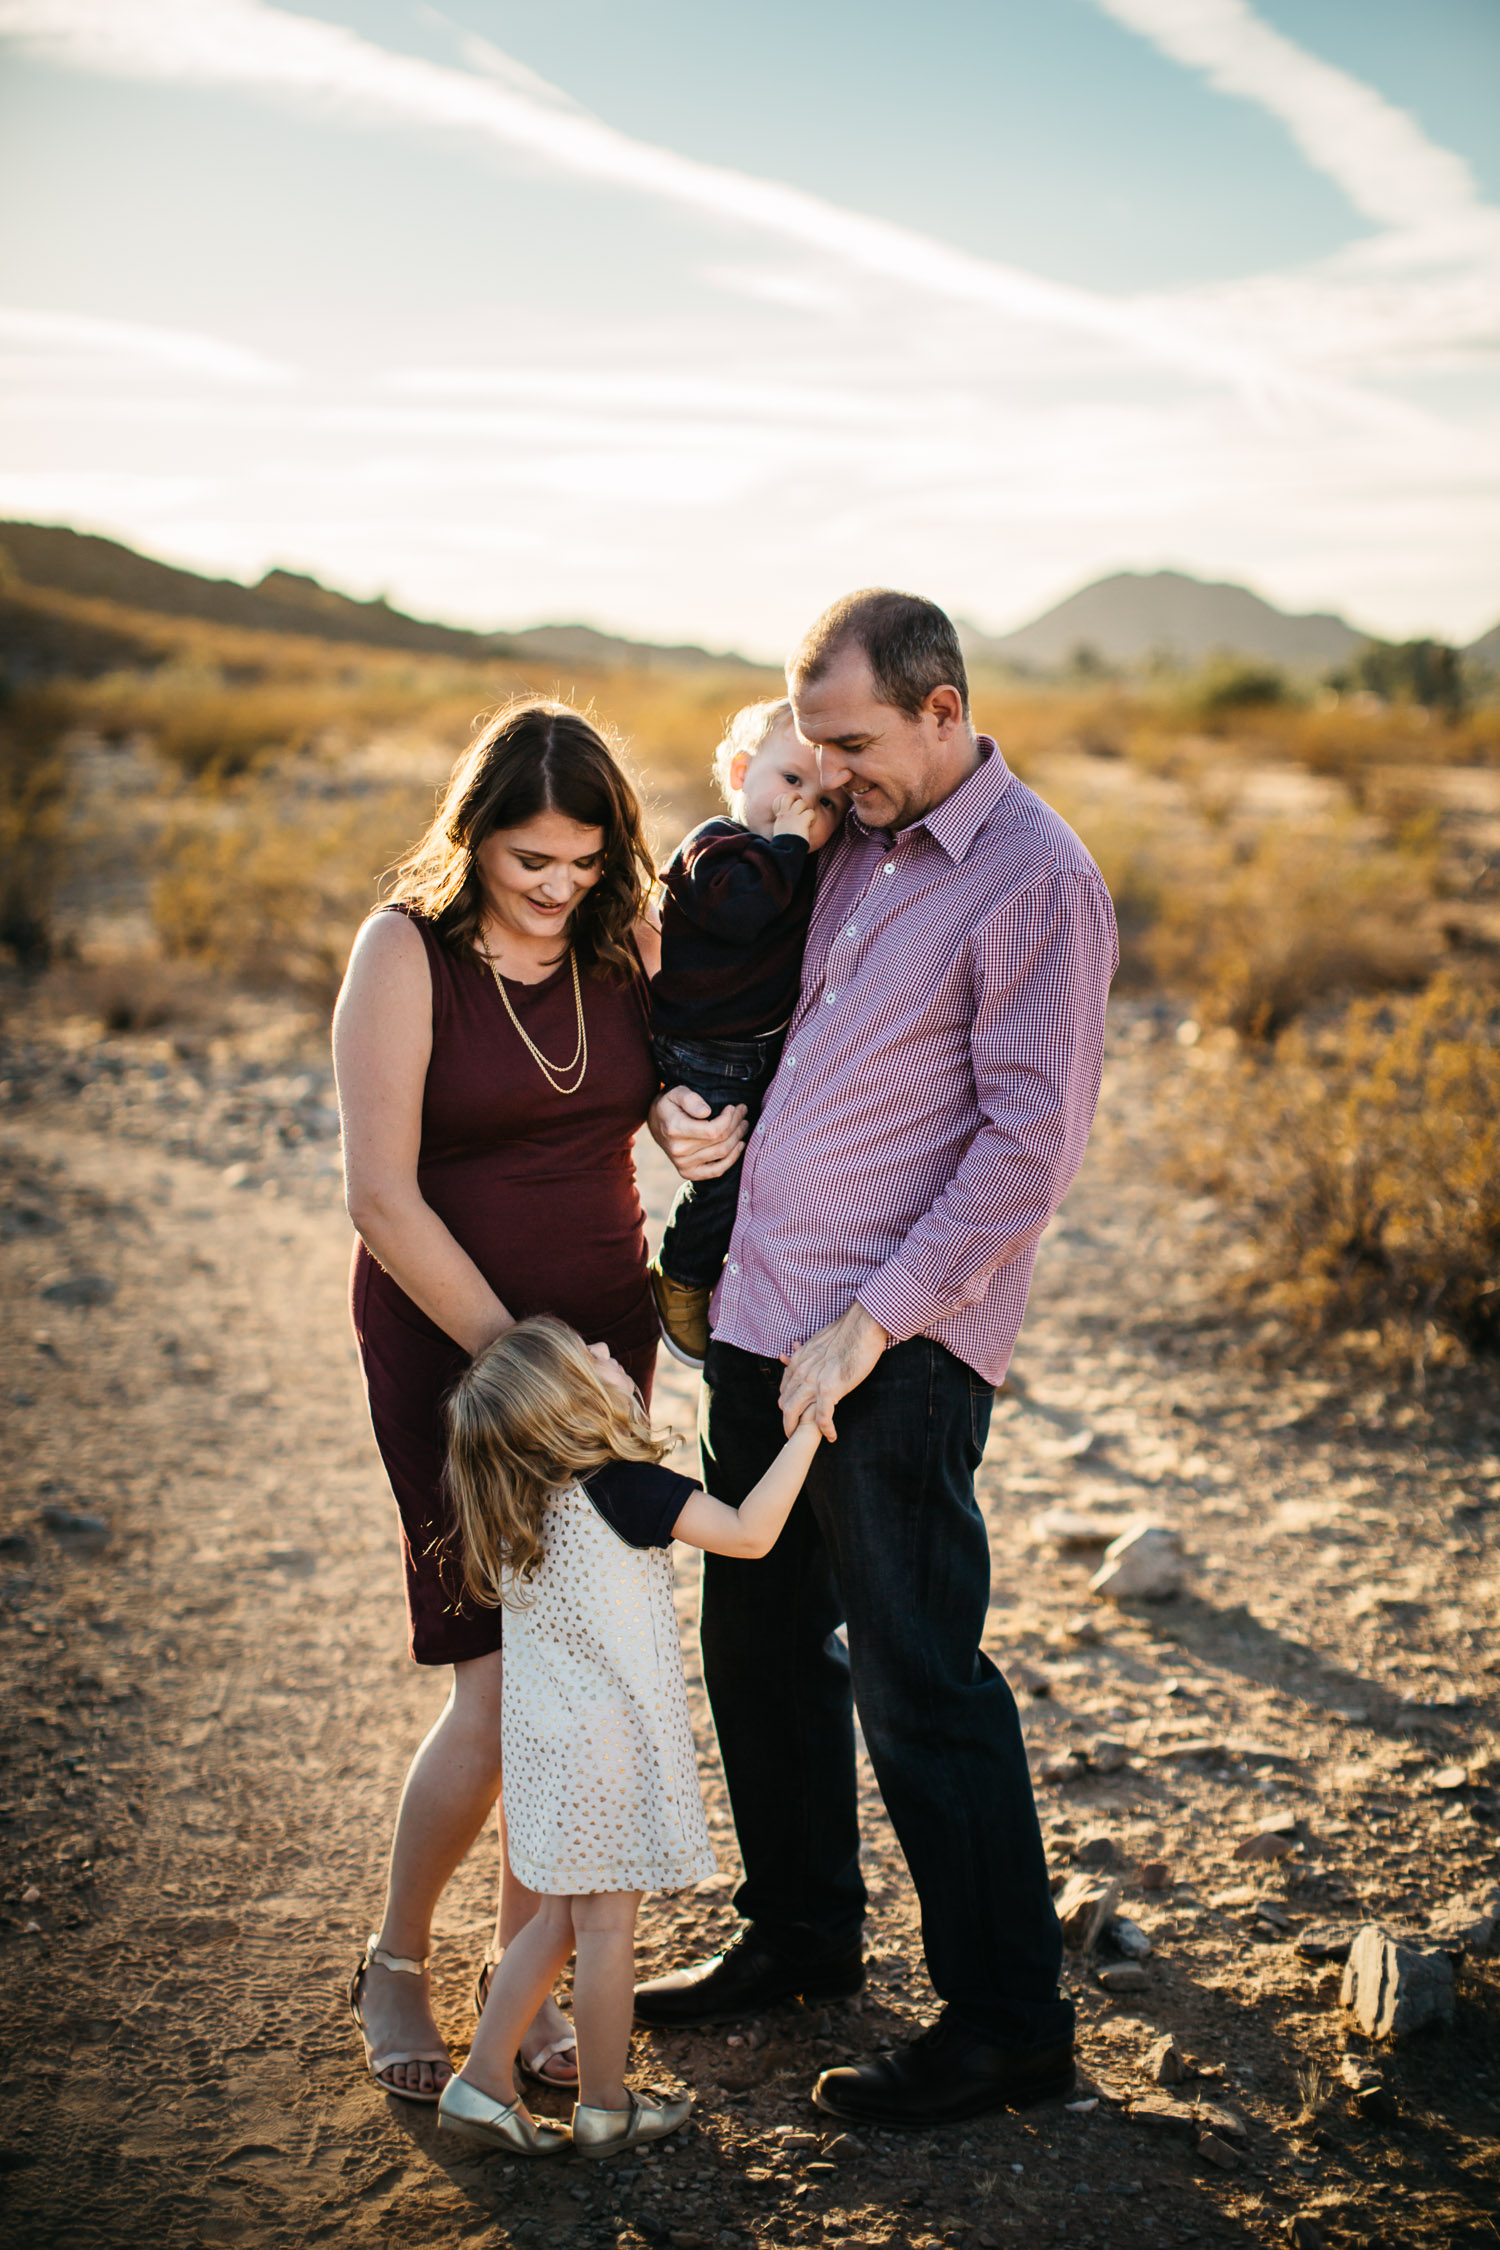 Phoenix family photography session sunlight mountain desert candid bold bright